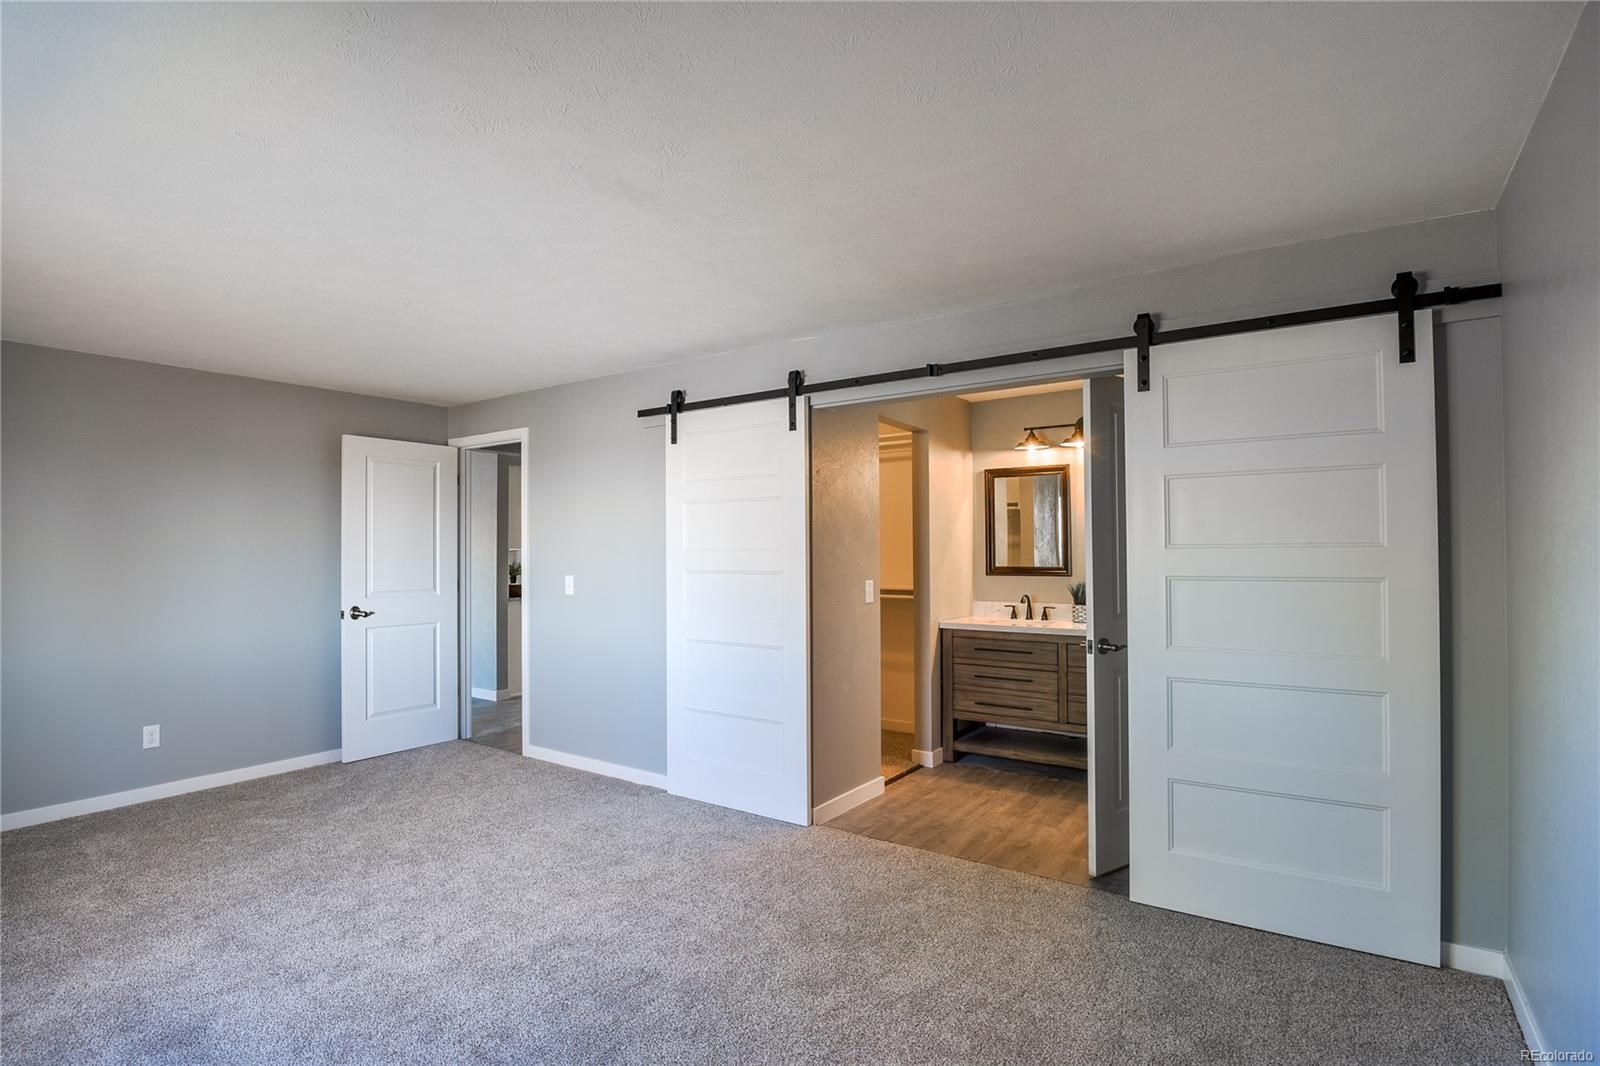 MLS# 8183776 - 4 - 2547 W 104th Circle, Westminster, CO 80234